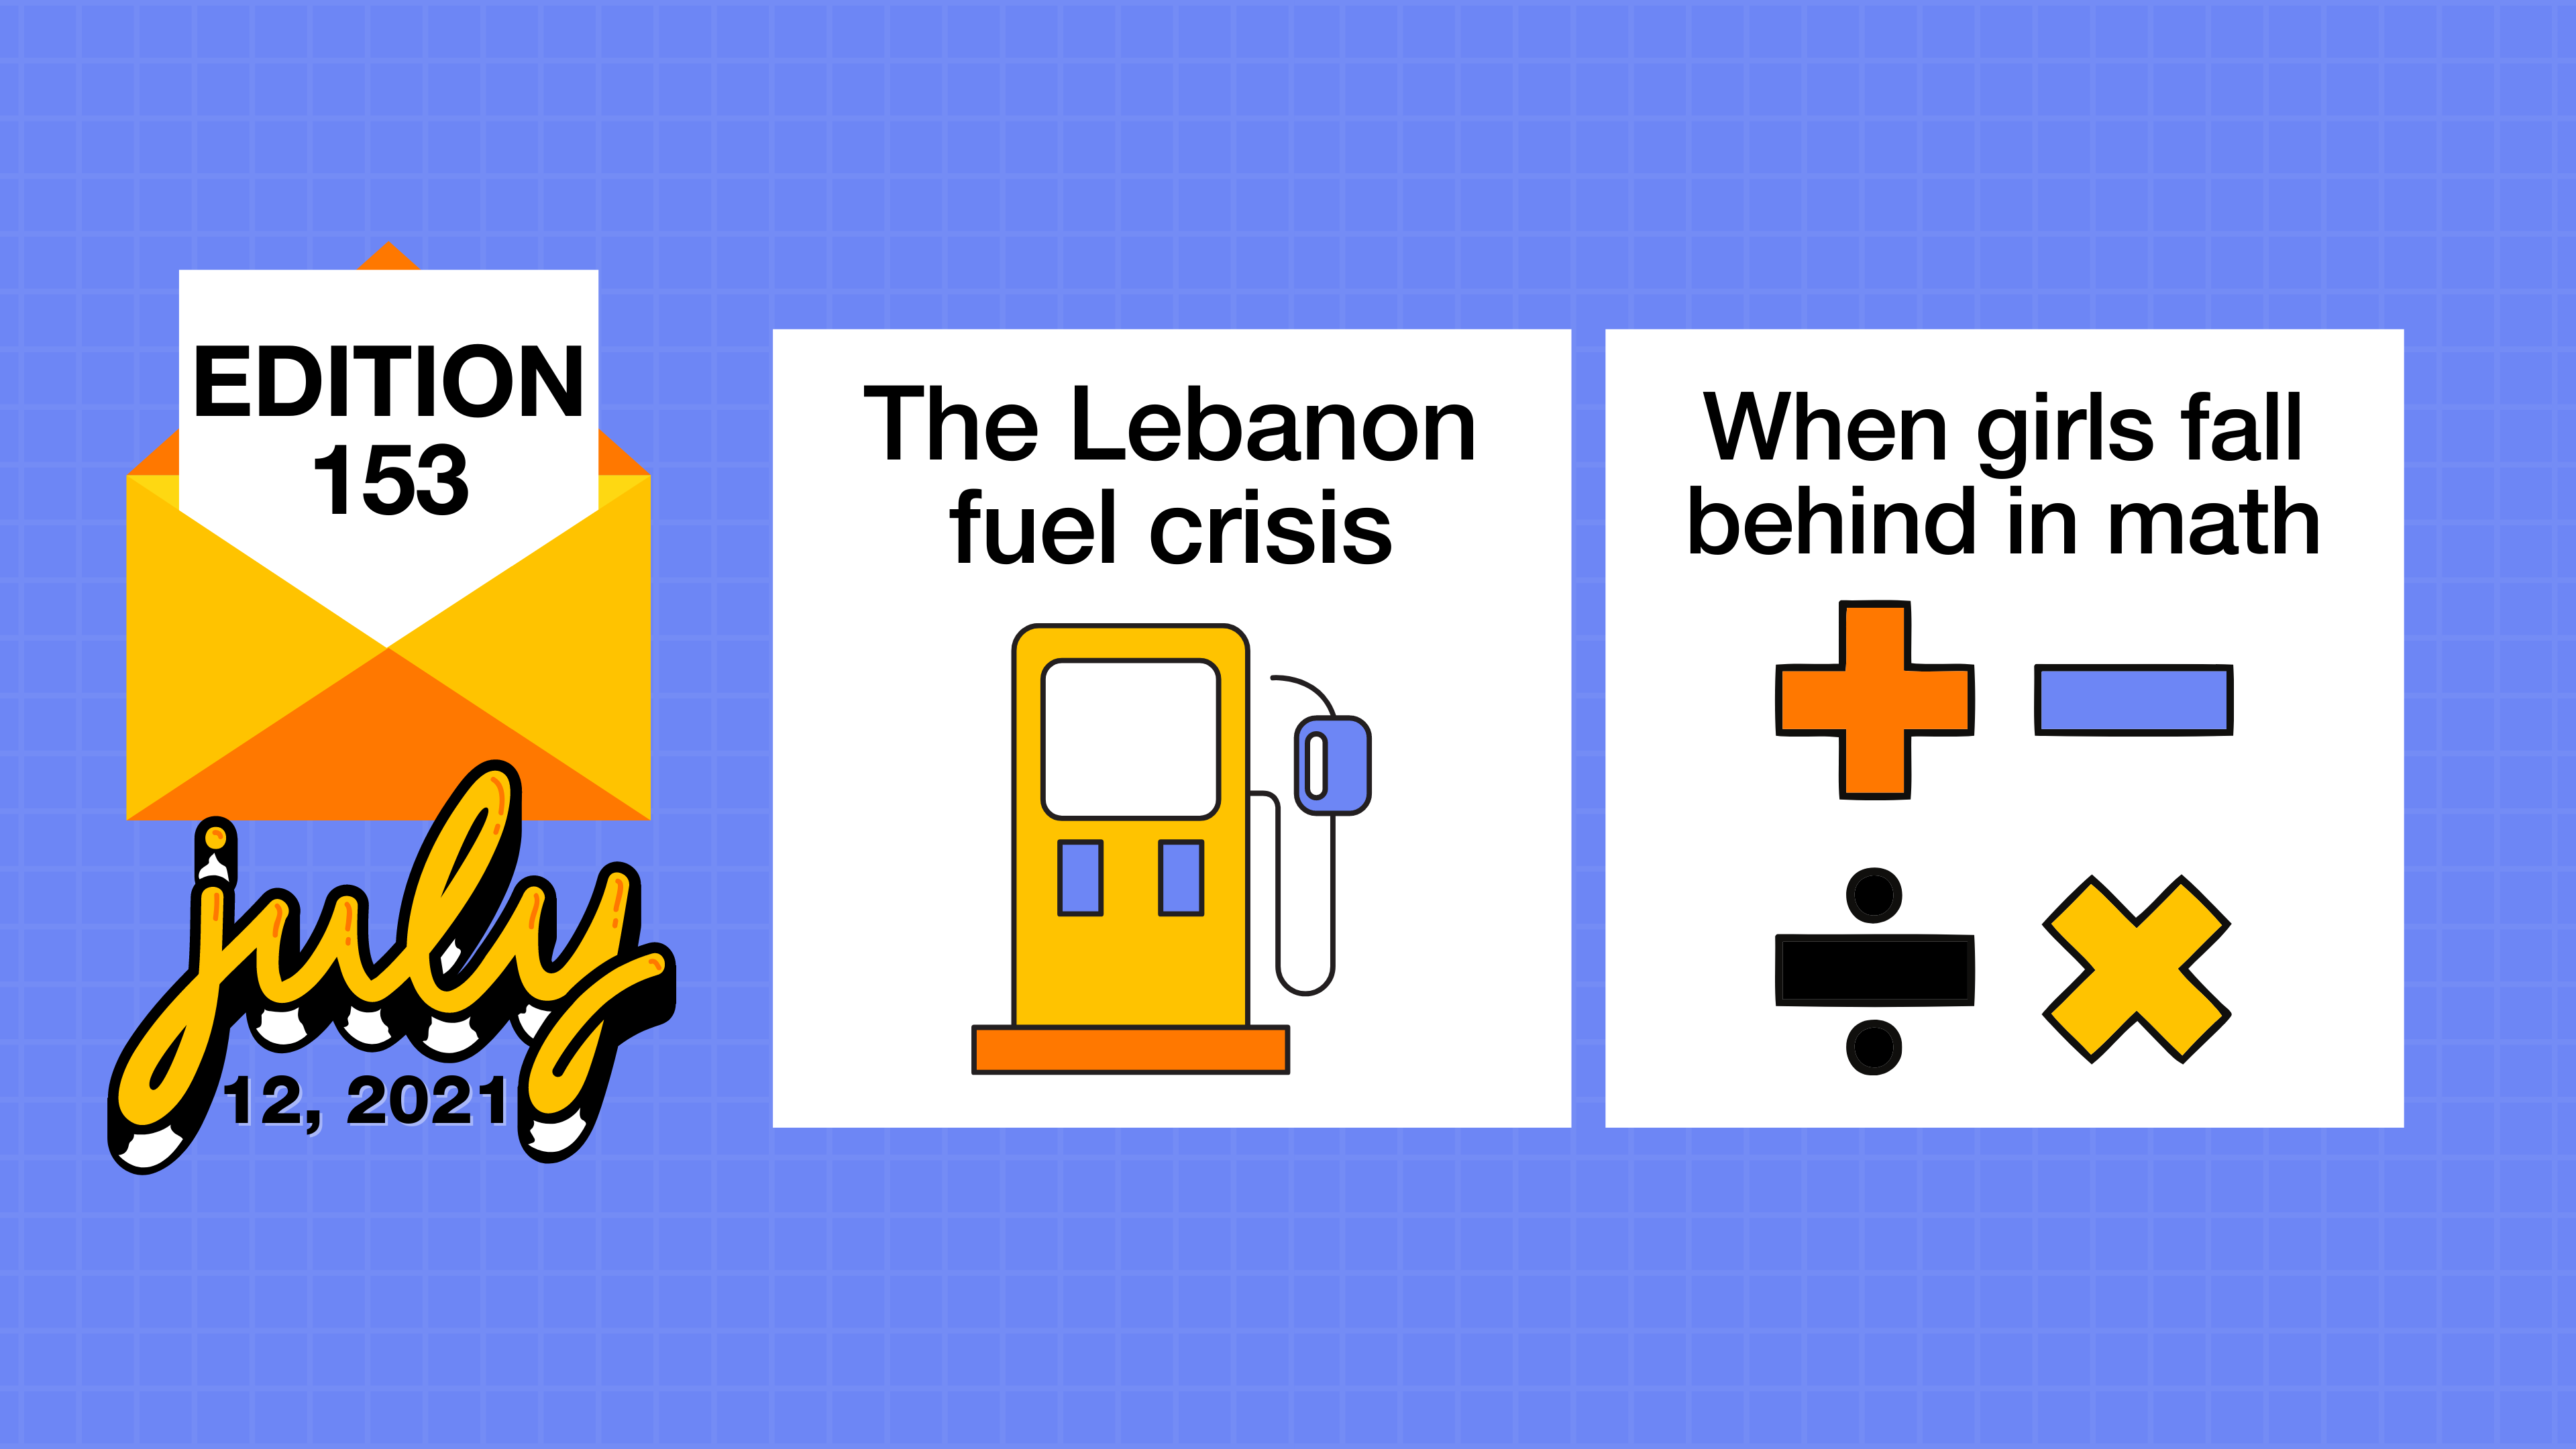 The Lebanon fuel crisis & when girls fall behind in math